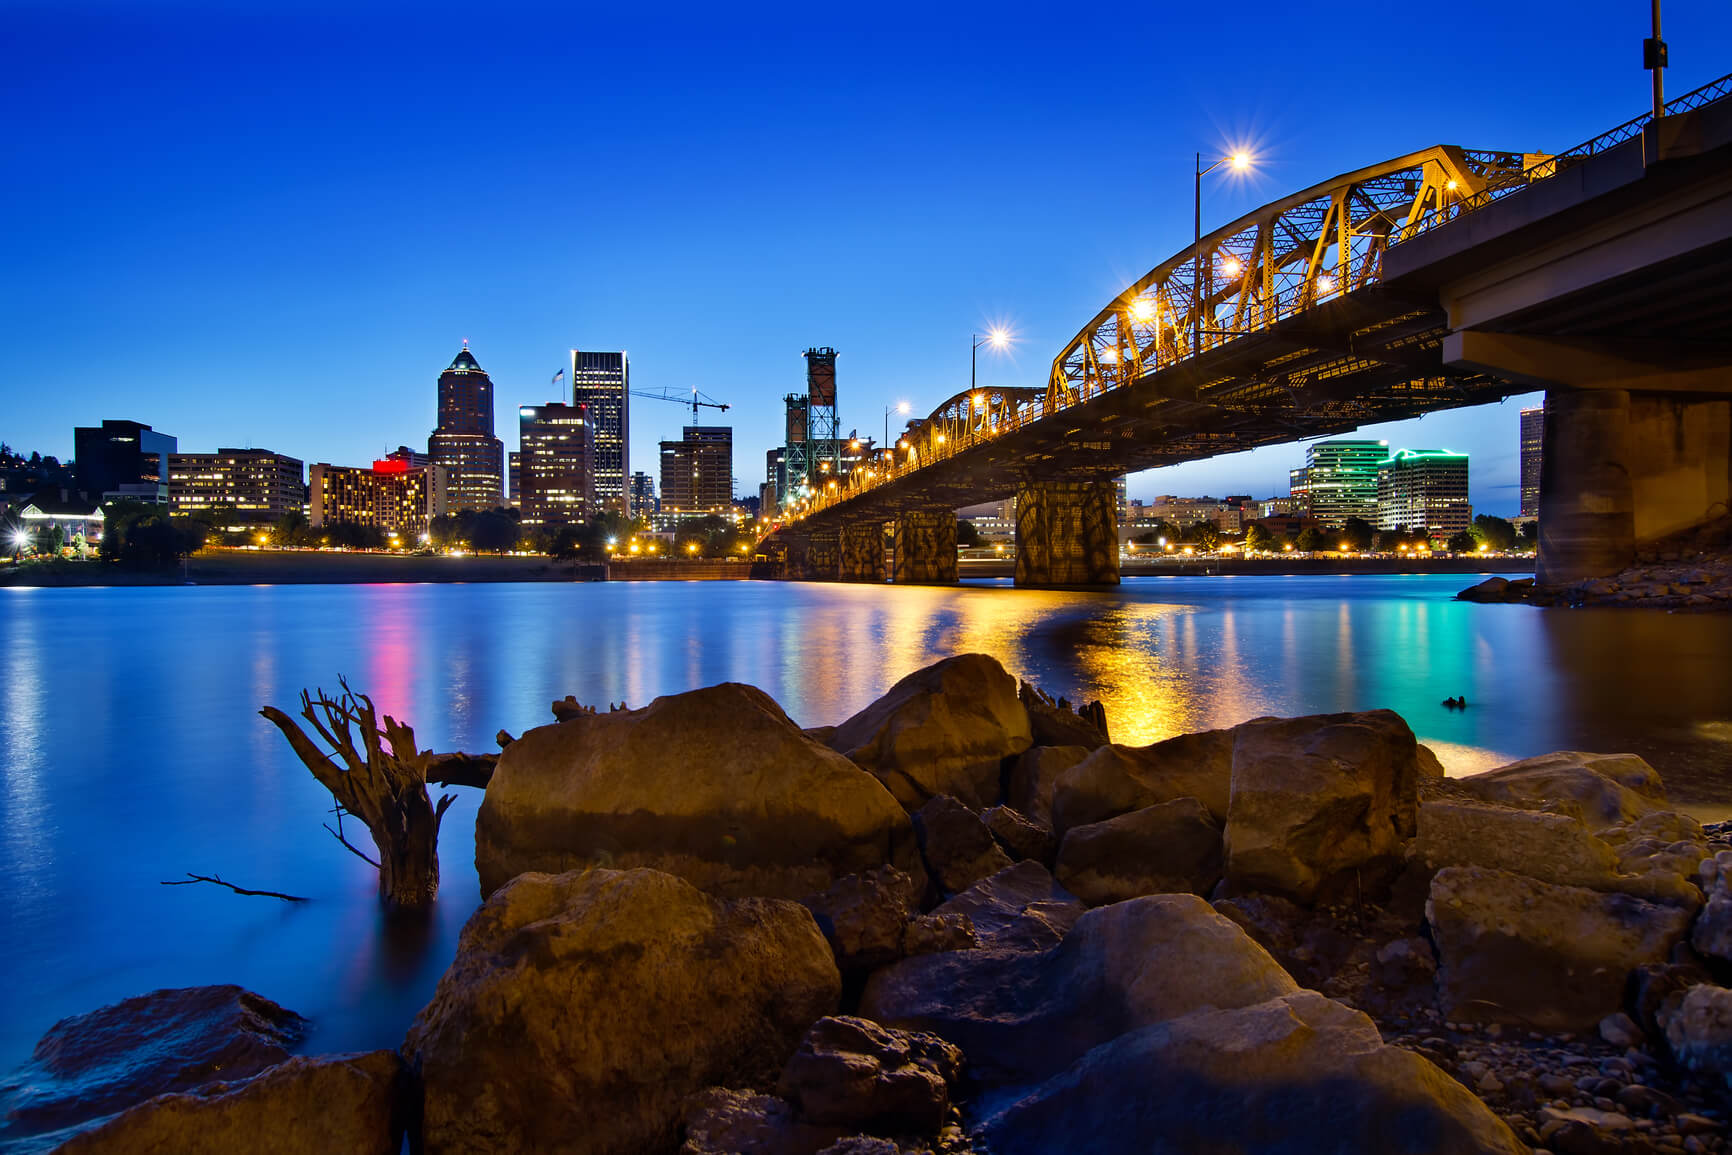 Manchester, UK to Portland, Oregon for only £304 roundtrip